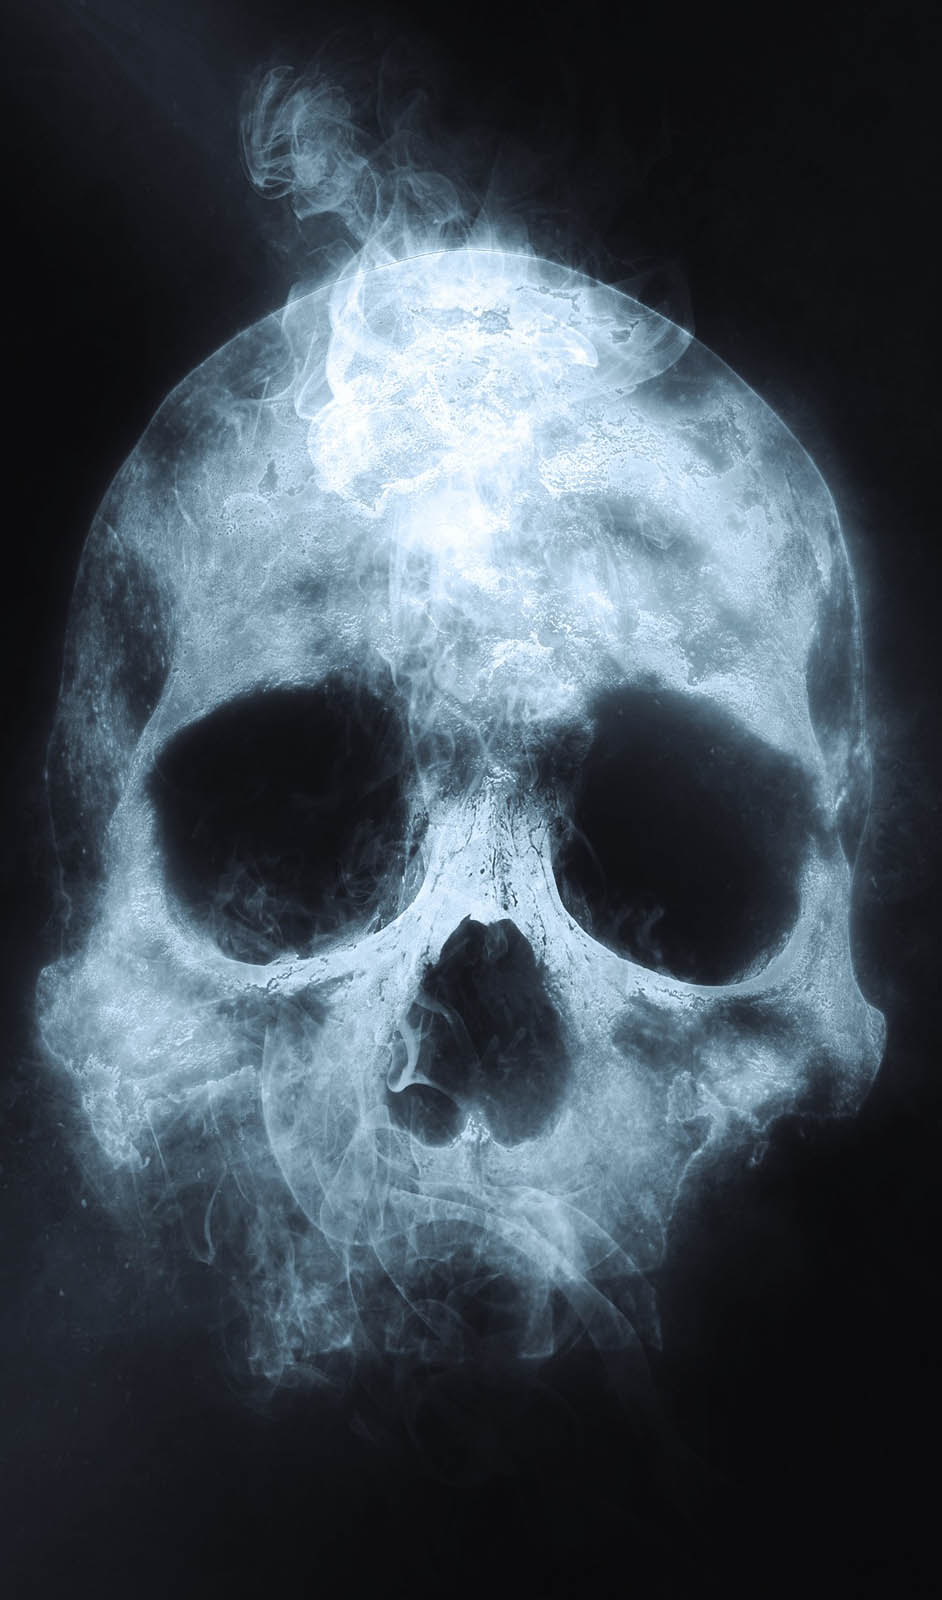 The Ghostly World Horror Tales